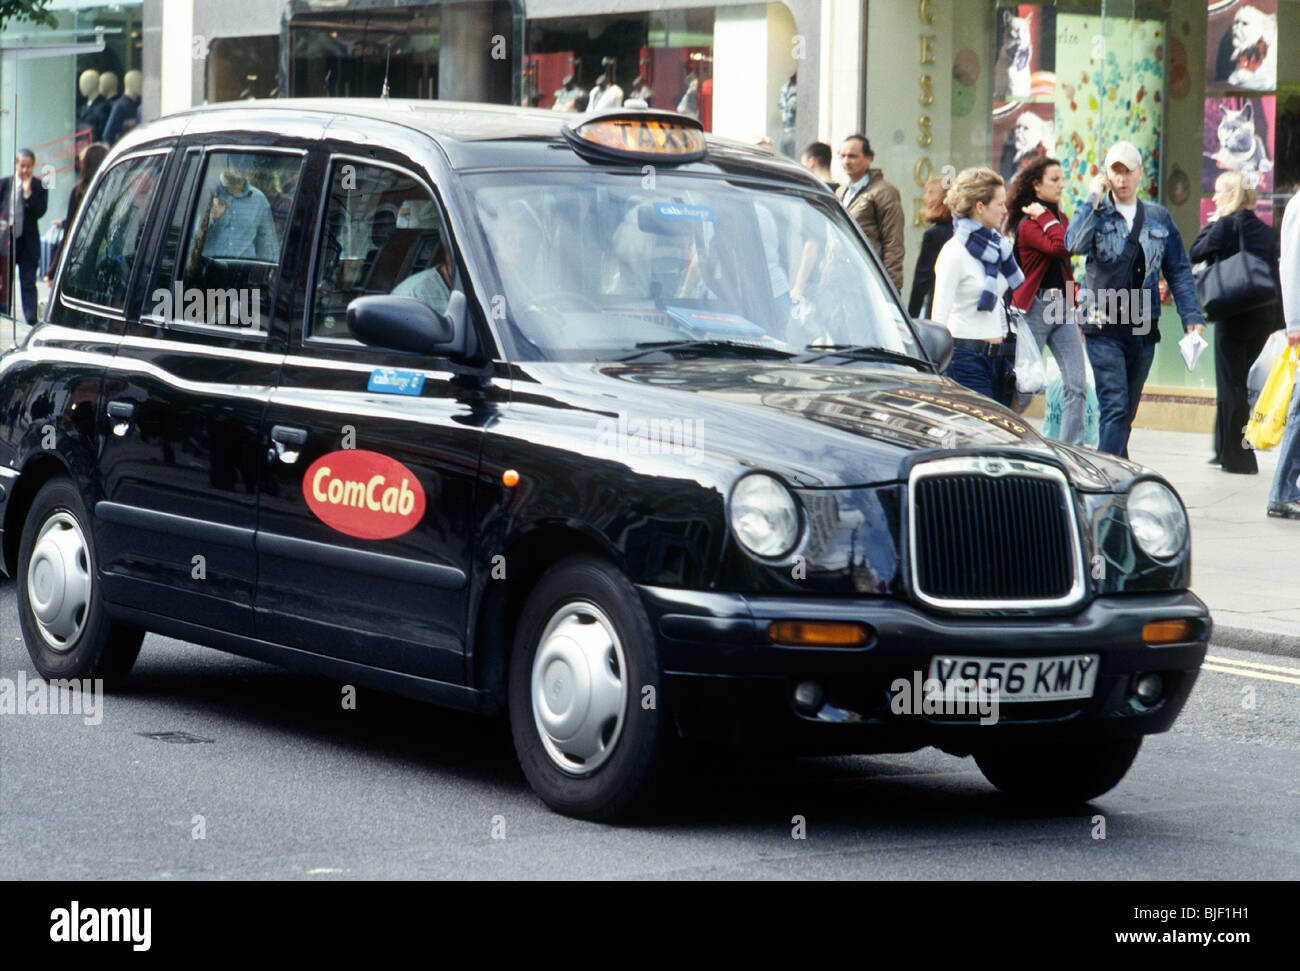 Traditional London black Taxi Cab. - Stock Image